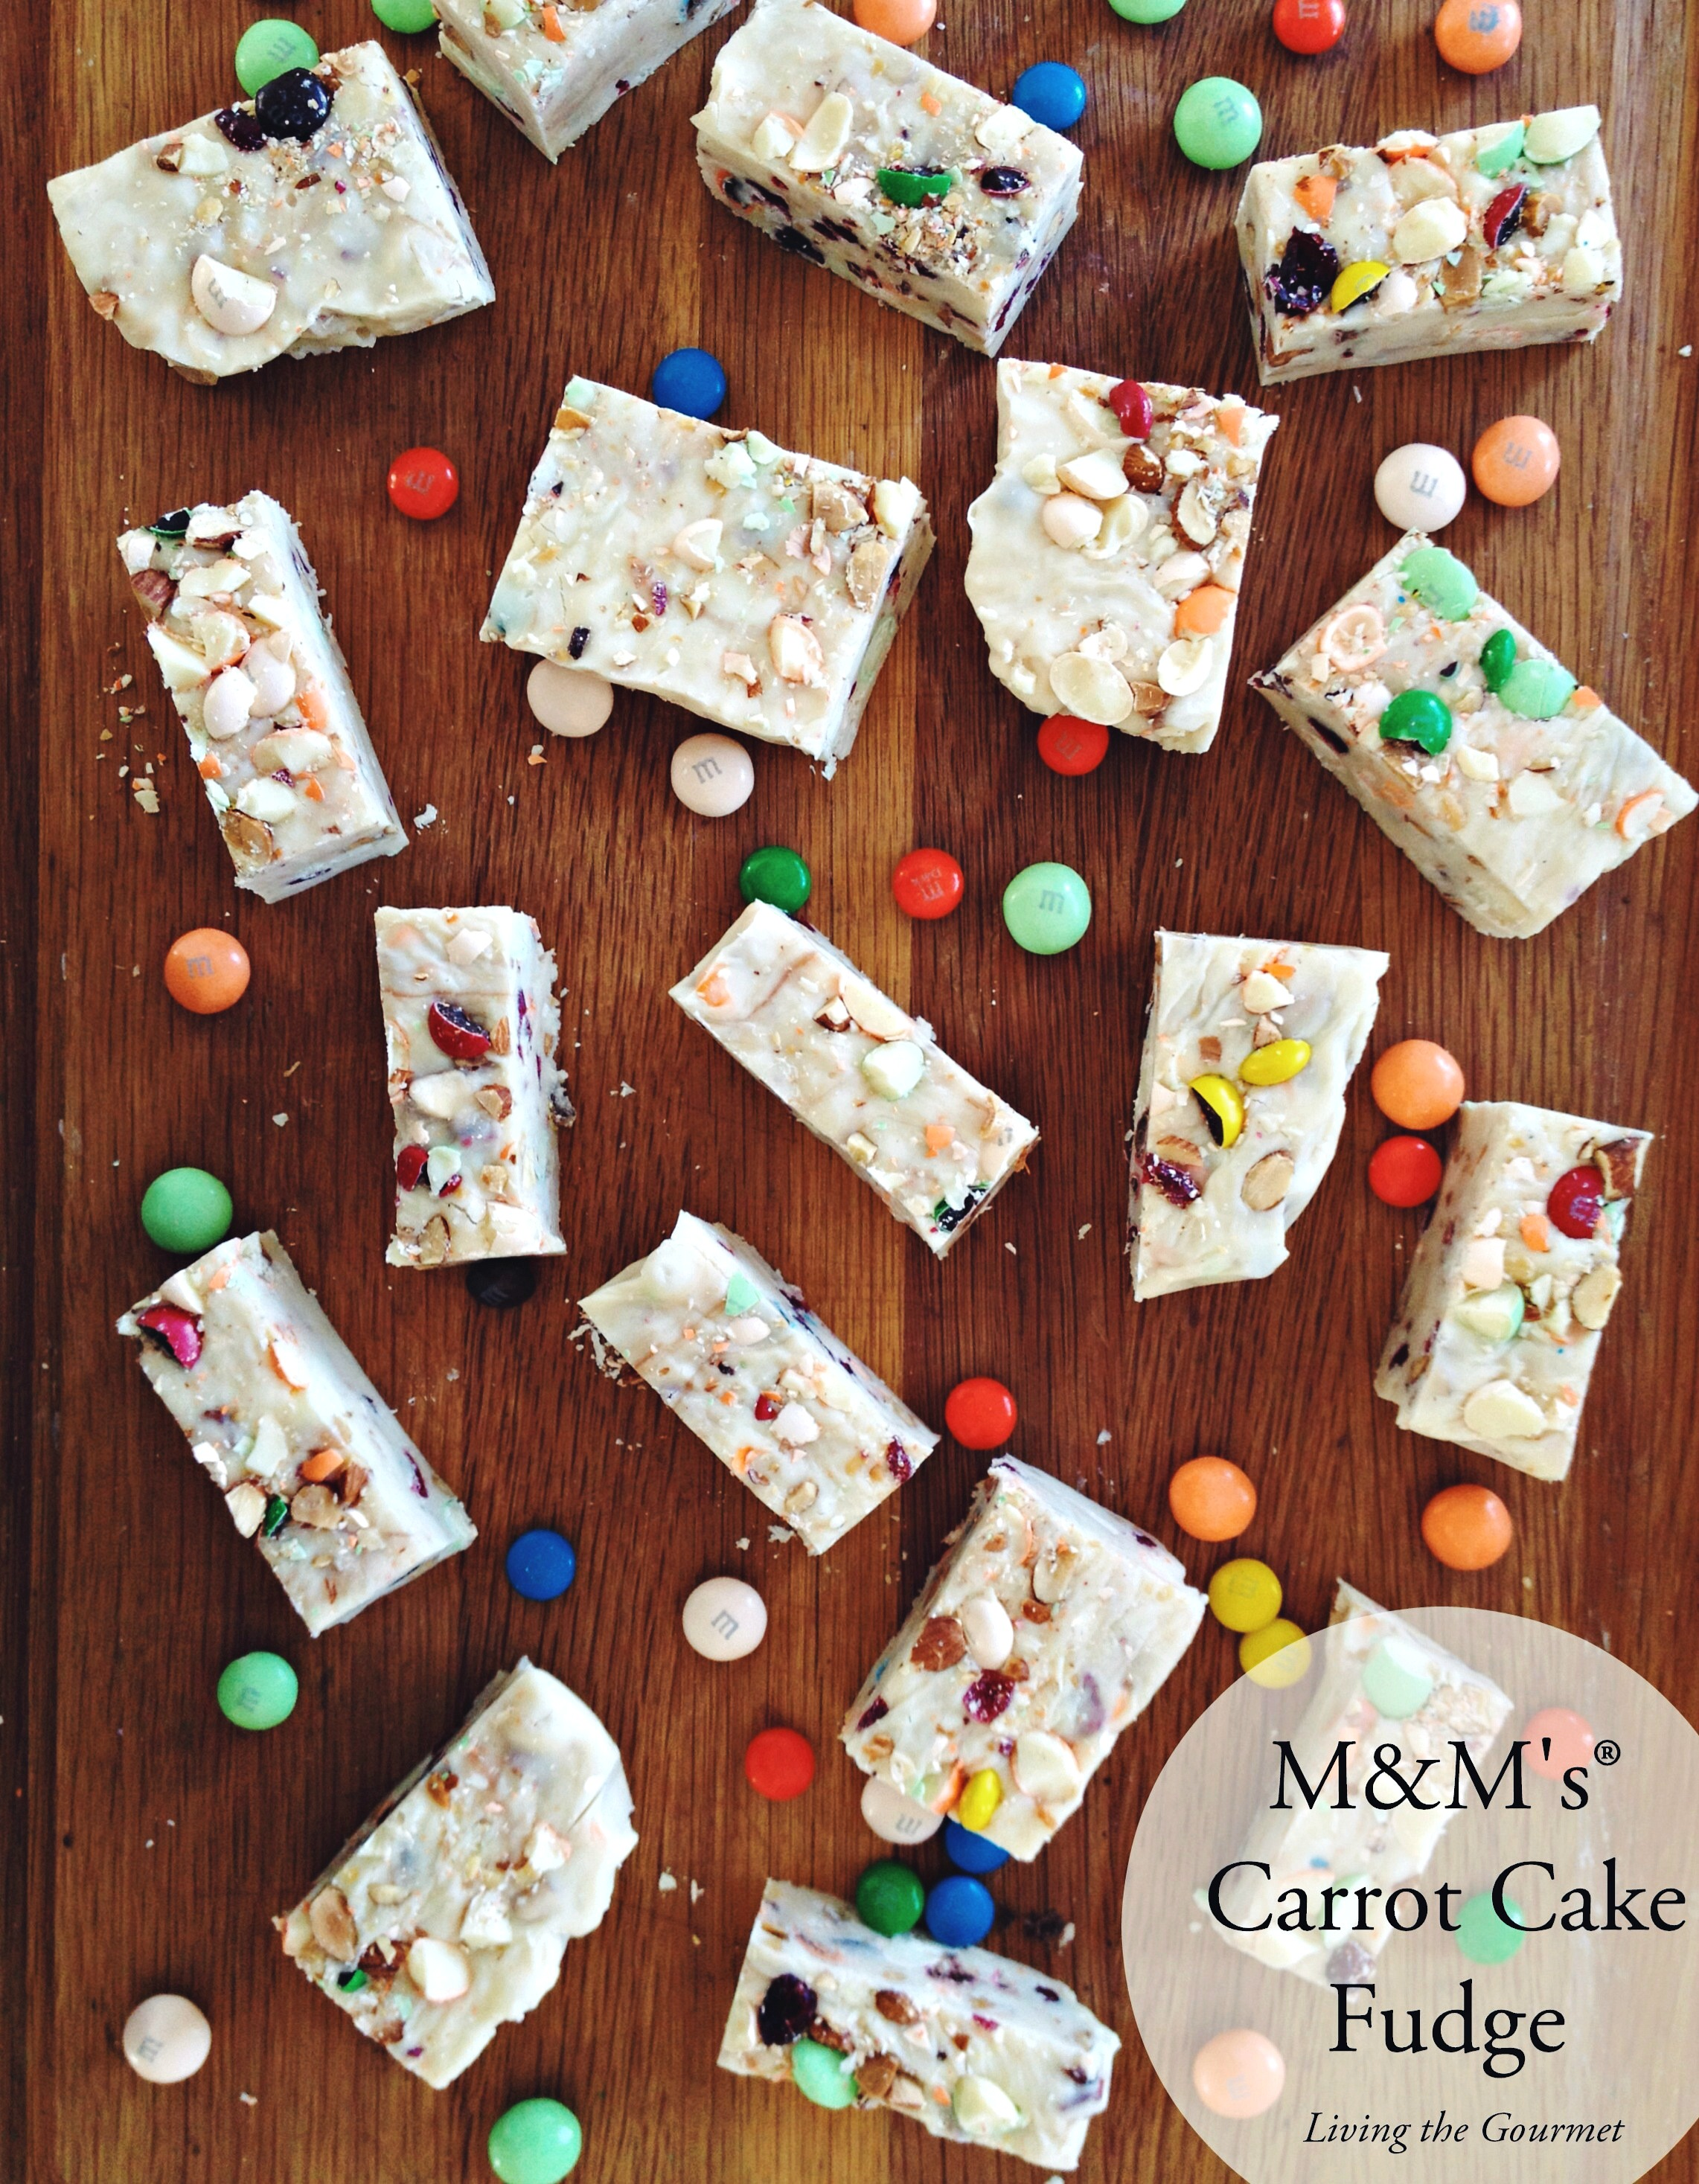 Living the Gourmet: M&M's® Carrot Cake Fudge